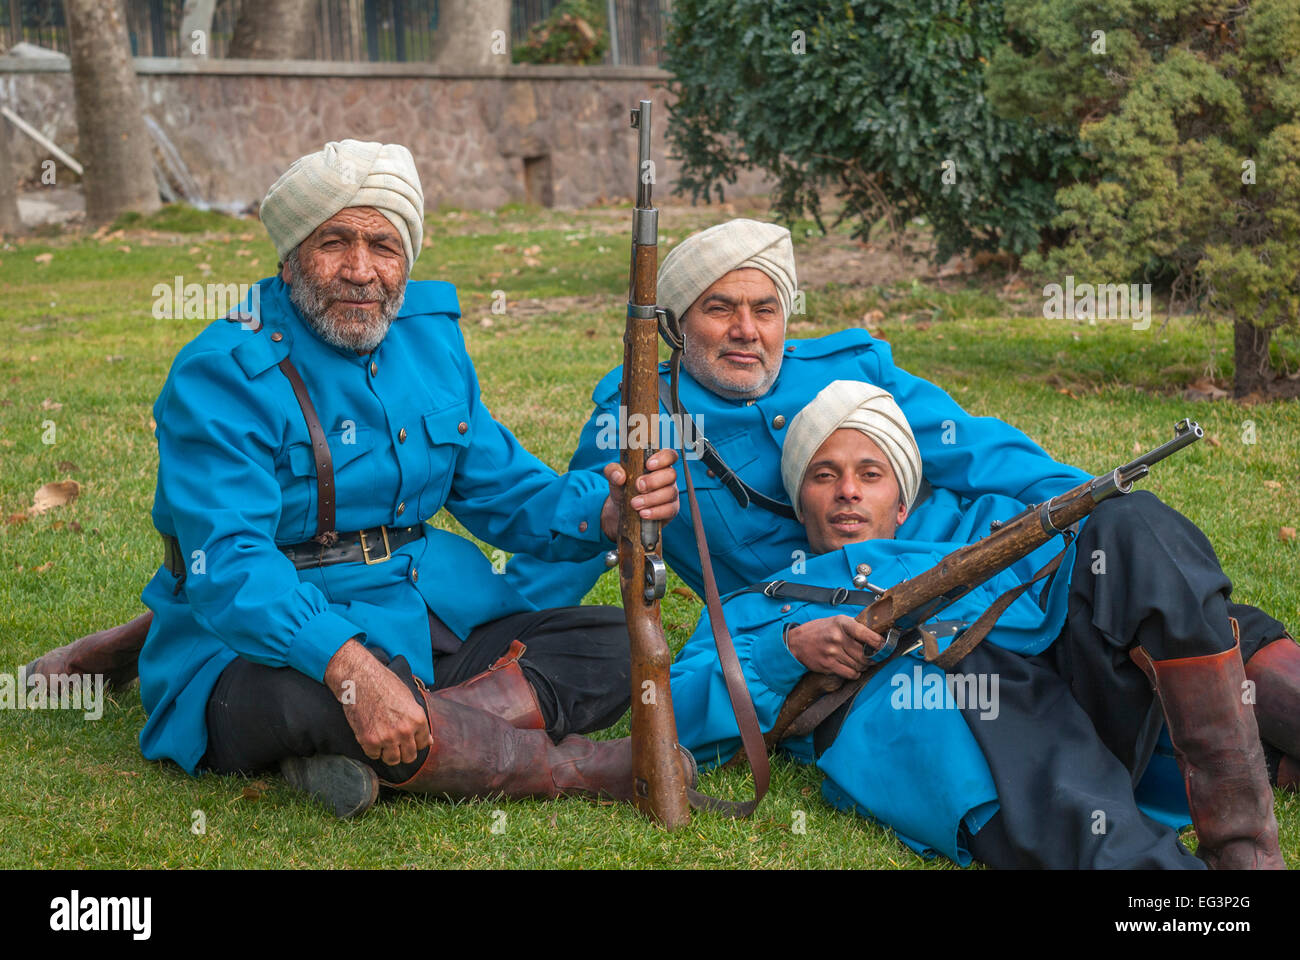 Tehran, Iran-Jan,14,2010: Actors dressed as a British Indian Army soldiers  getting ready to act in a movie. - Stock Image